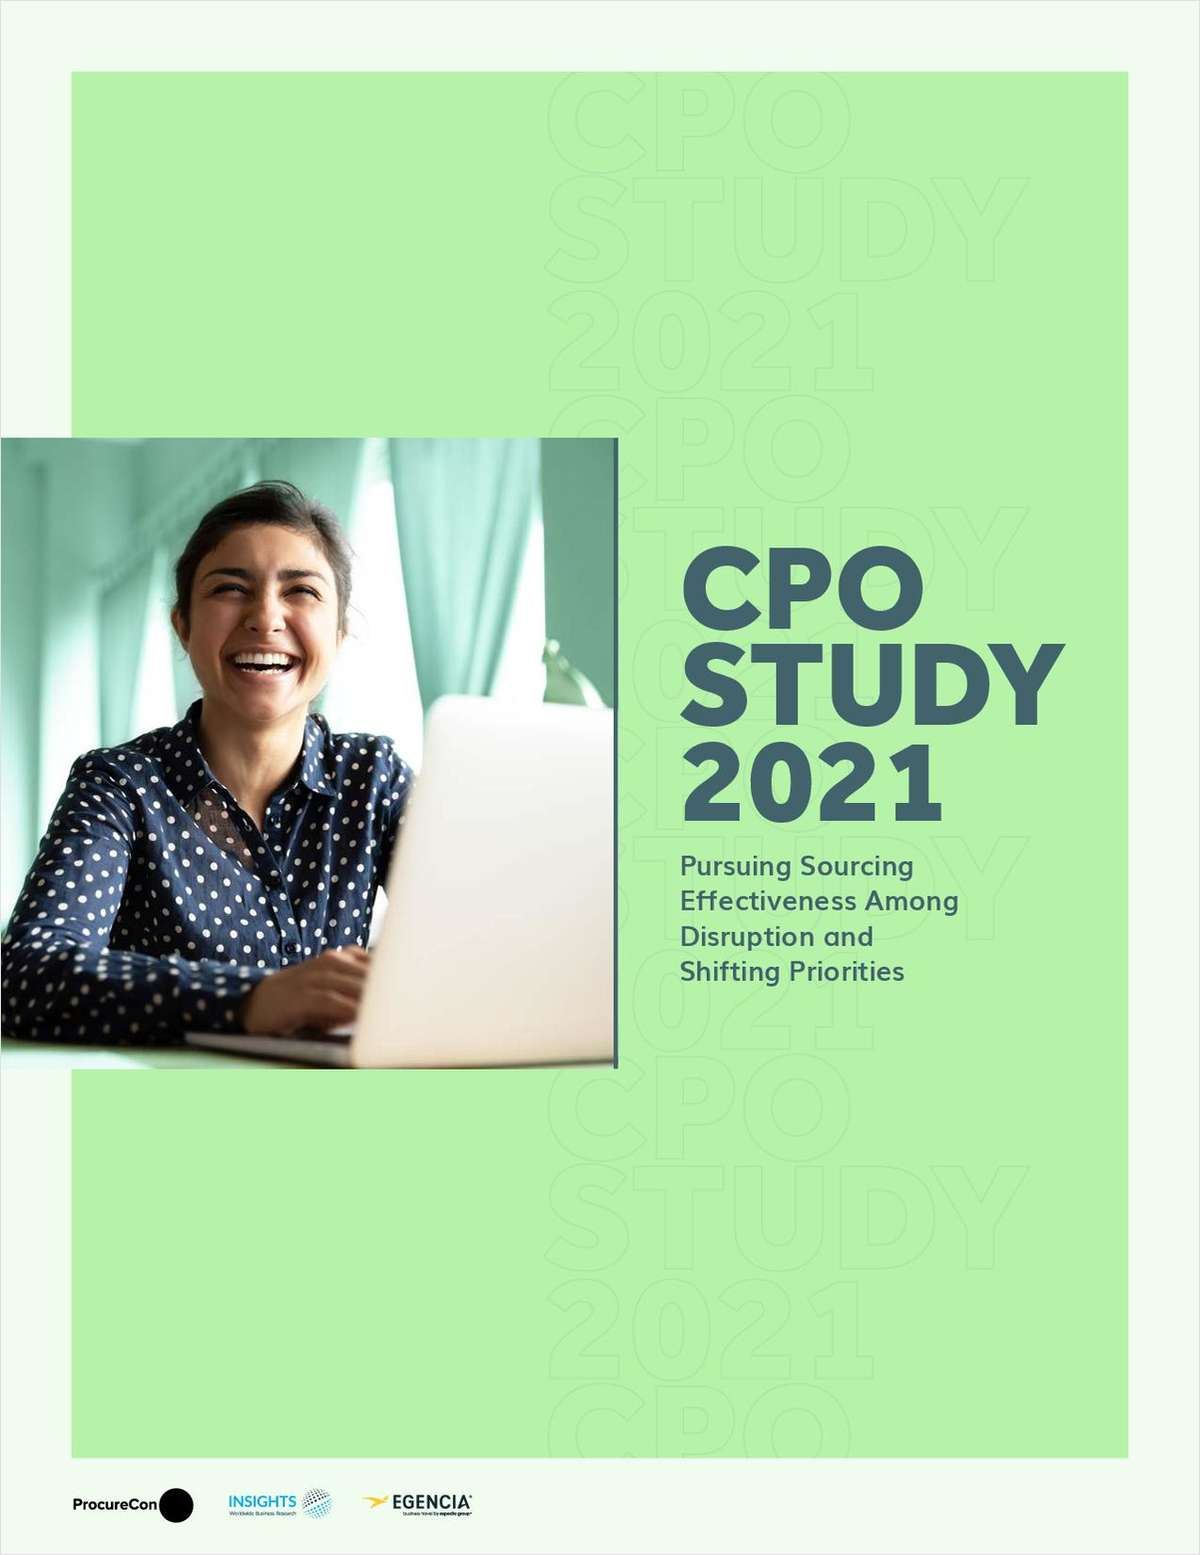 CPO Study 2021: Pursuing Sourcing Effectiveness Among Disruption and Shifting Priorities